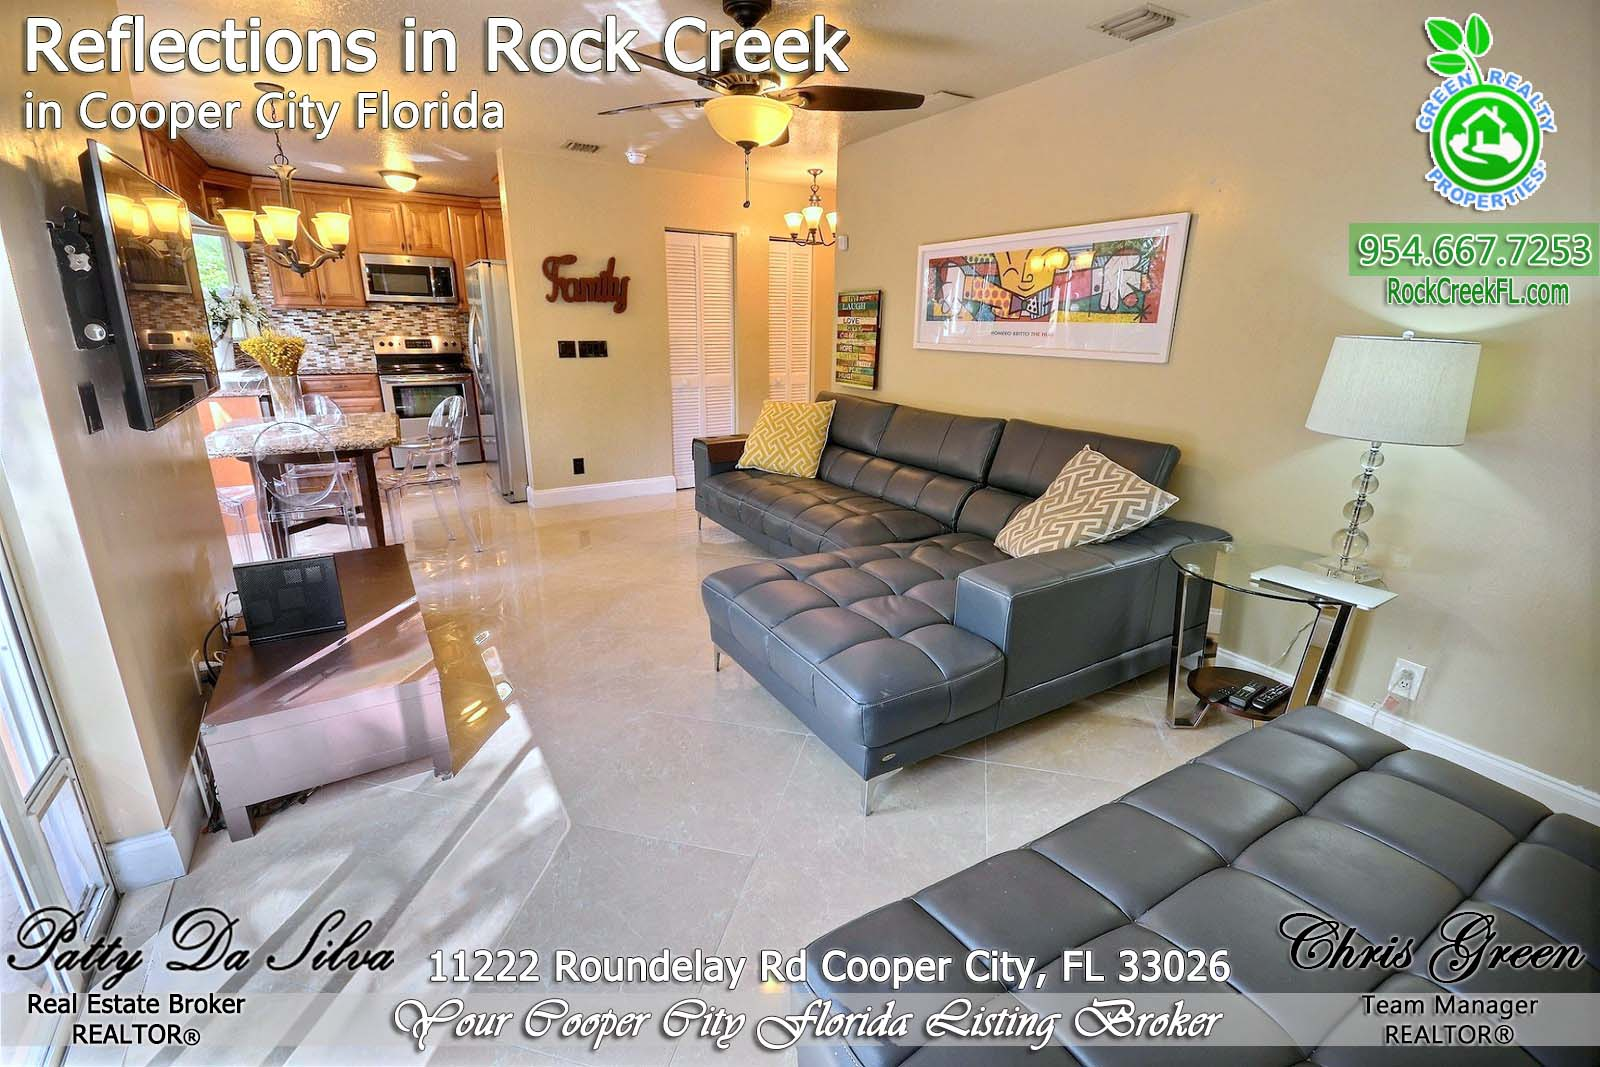 Cooper City Homes For Sale - Reflections in Rock Creek Homes Fo Sale (19)